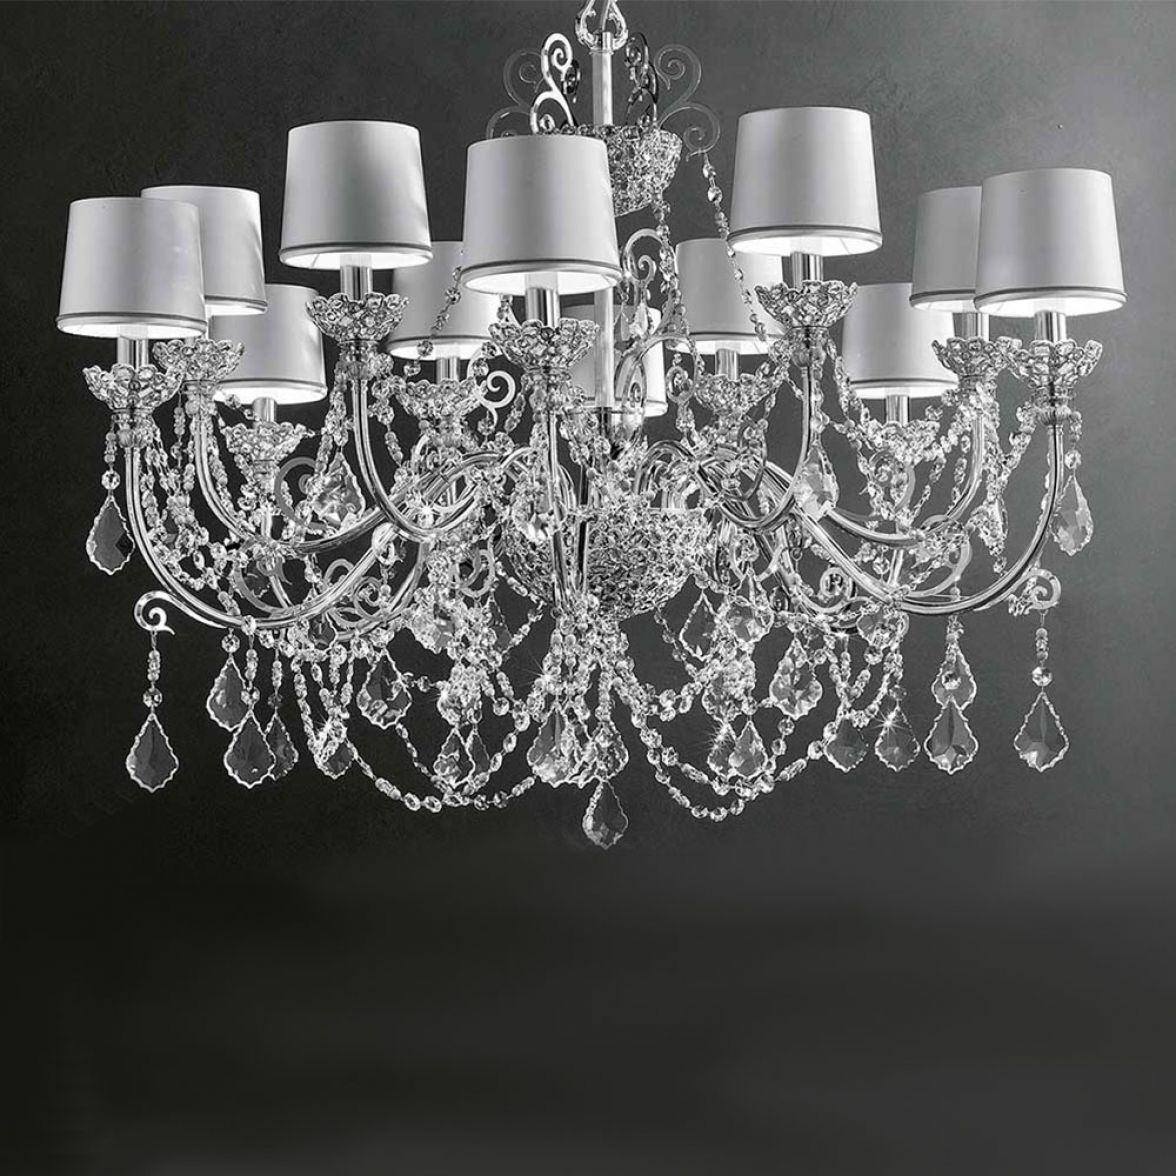 Imperial chandelier